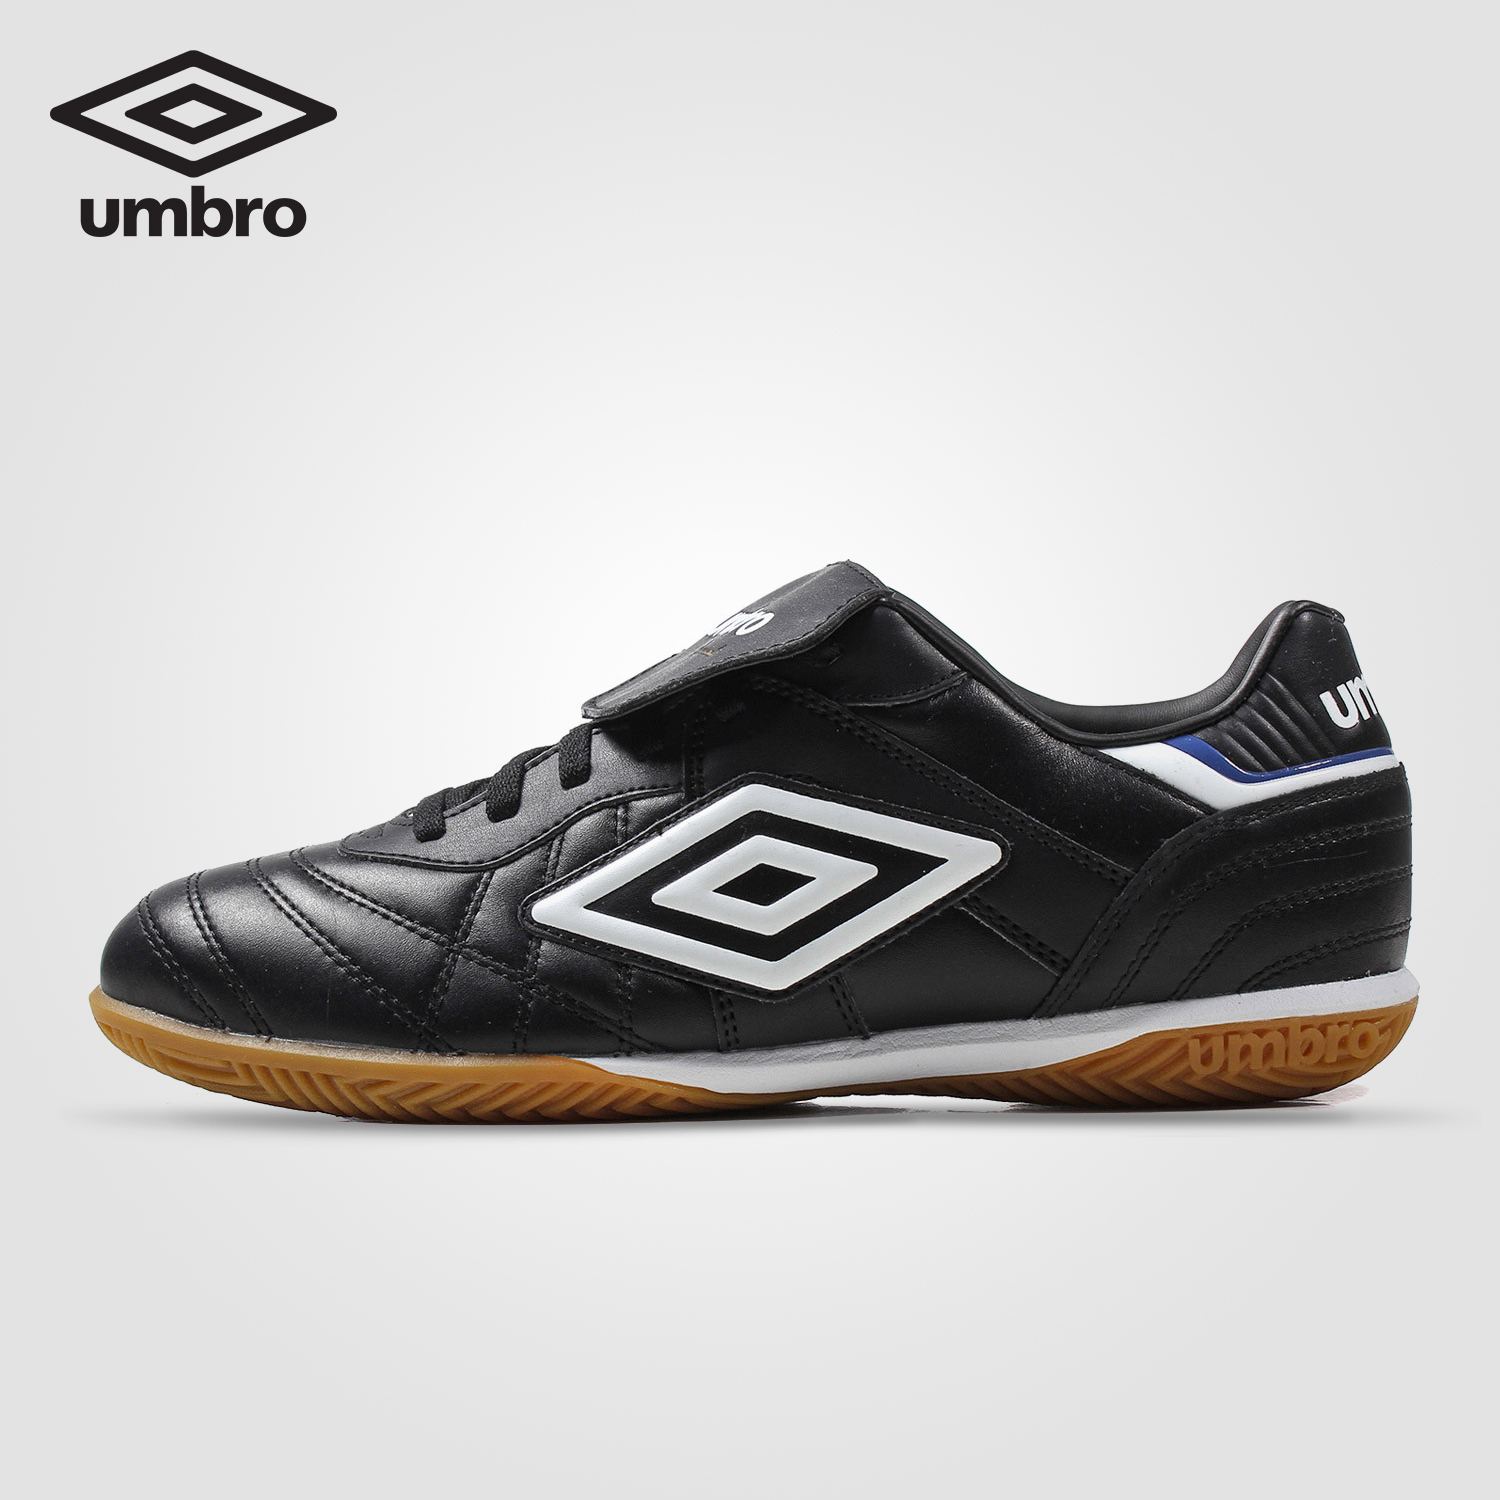 Umbro Football Shoes Men IC Non-Spikes Antiskid Wear-resistant Adult Profession Training Shoes Soccer Shoes Ucb90115 umbro football shoes men breathable rubber antiskid hg professional competition training football boots soccer shoes ucb90129